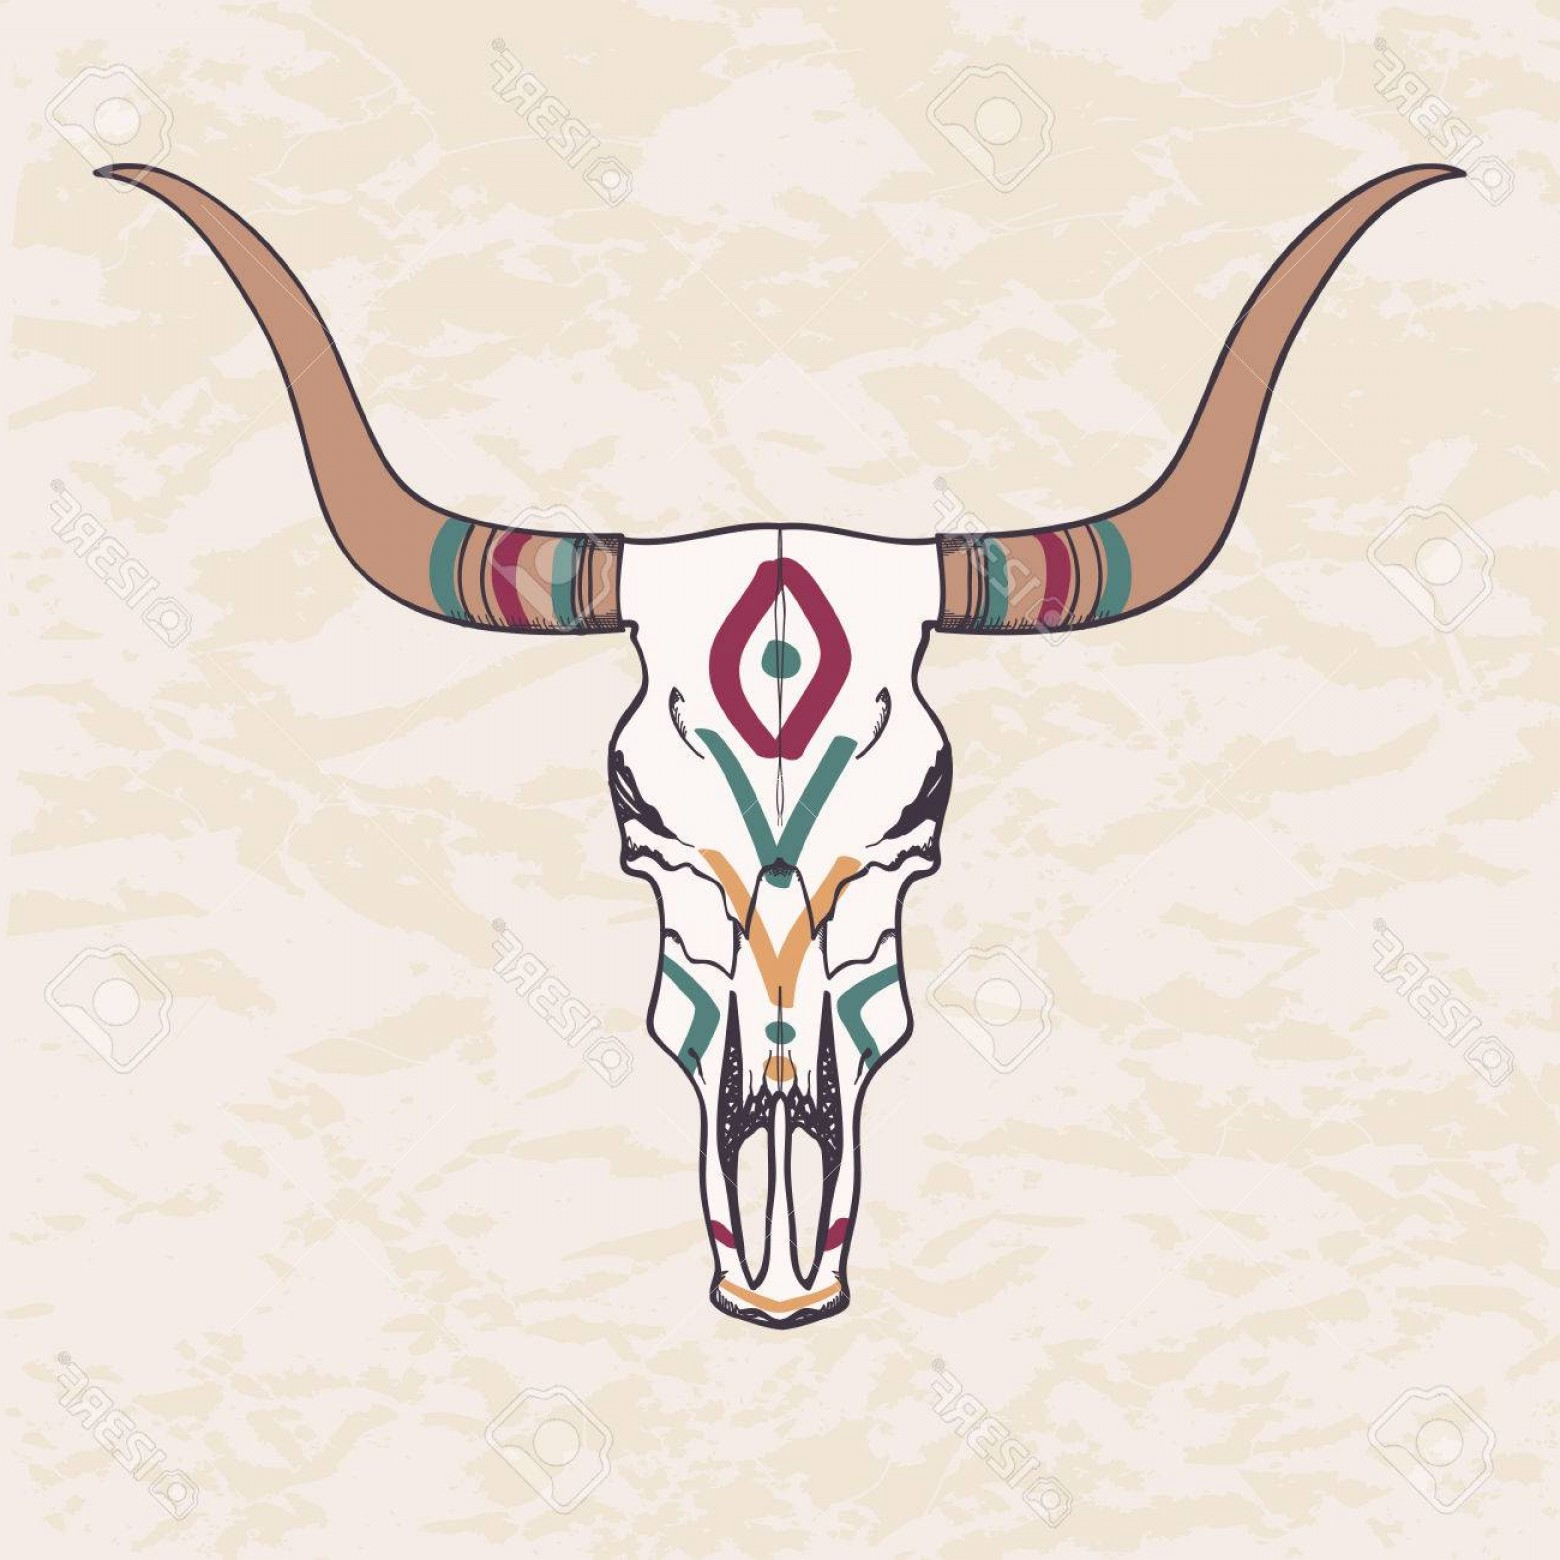 Longhorn Skull Vector: Photostock Vector Vector Illustration Of Bull Skull